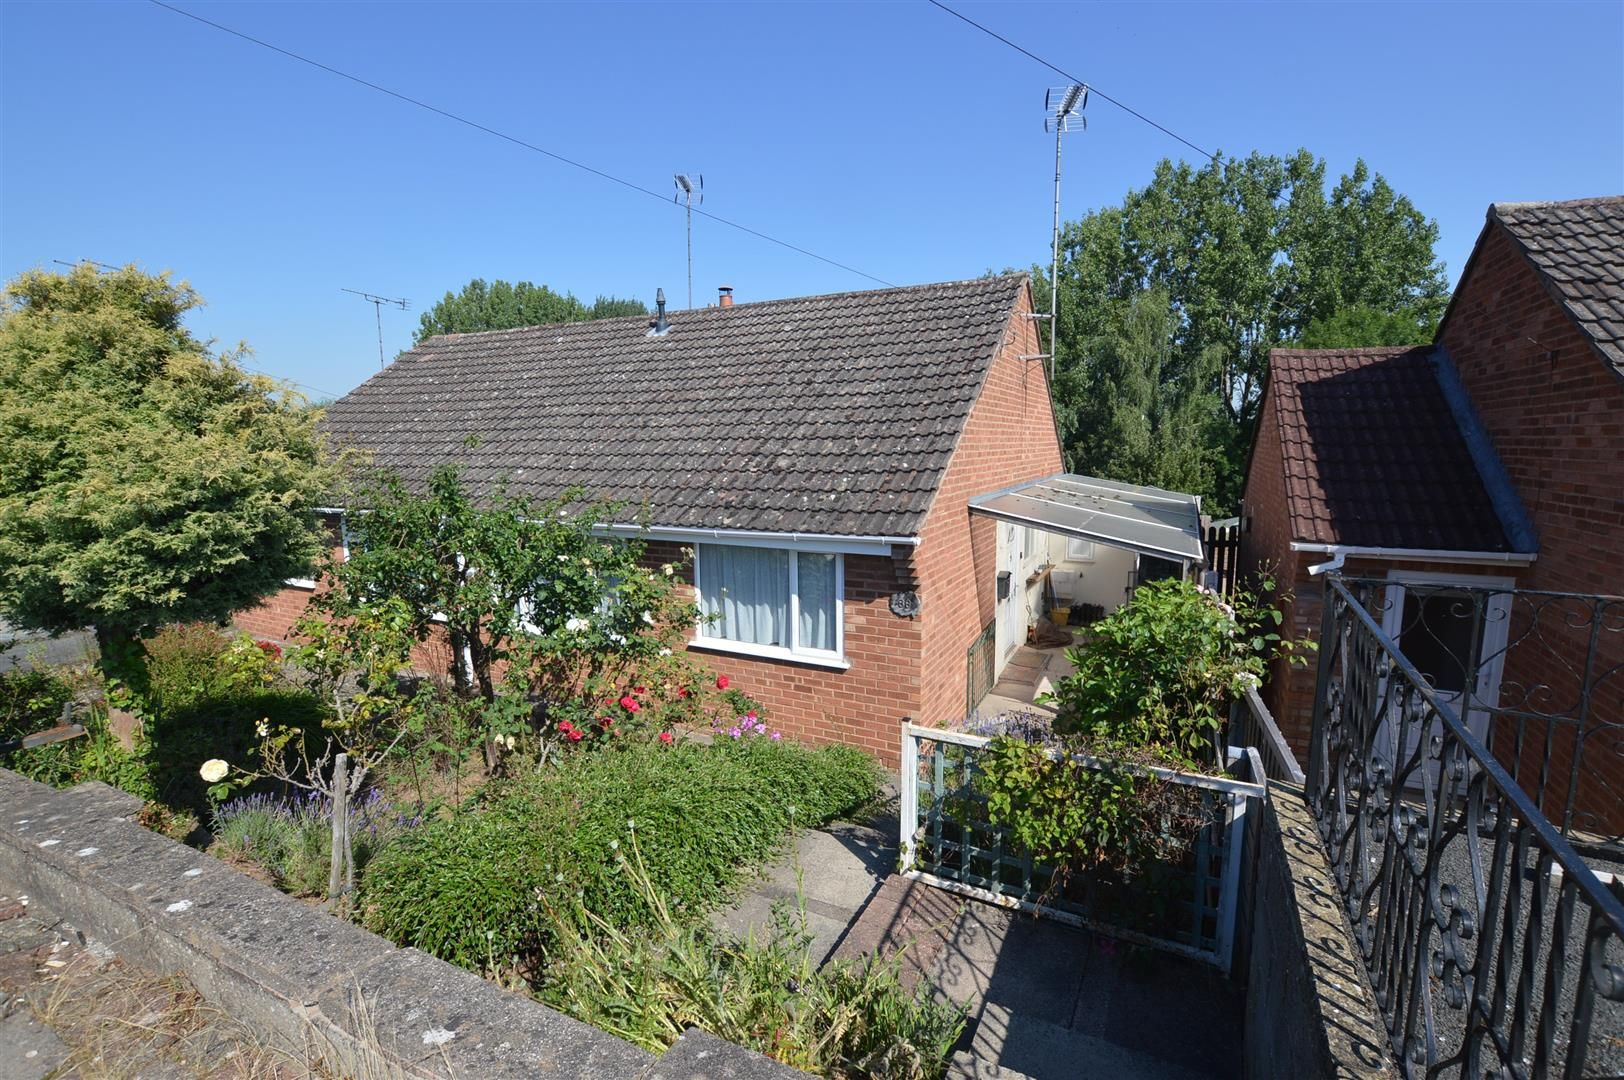 2 bed semi-detached bungalow for sale in Leominster, HR6